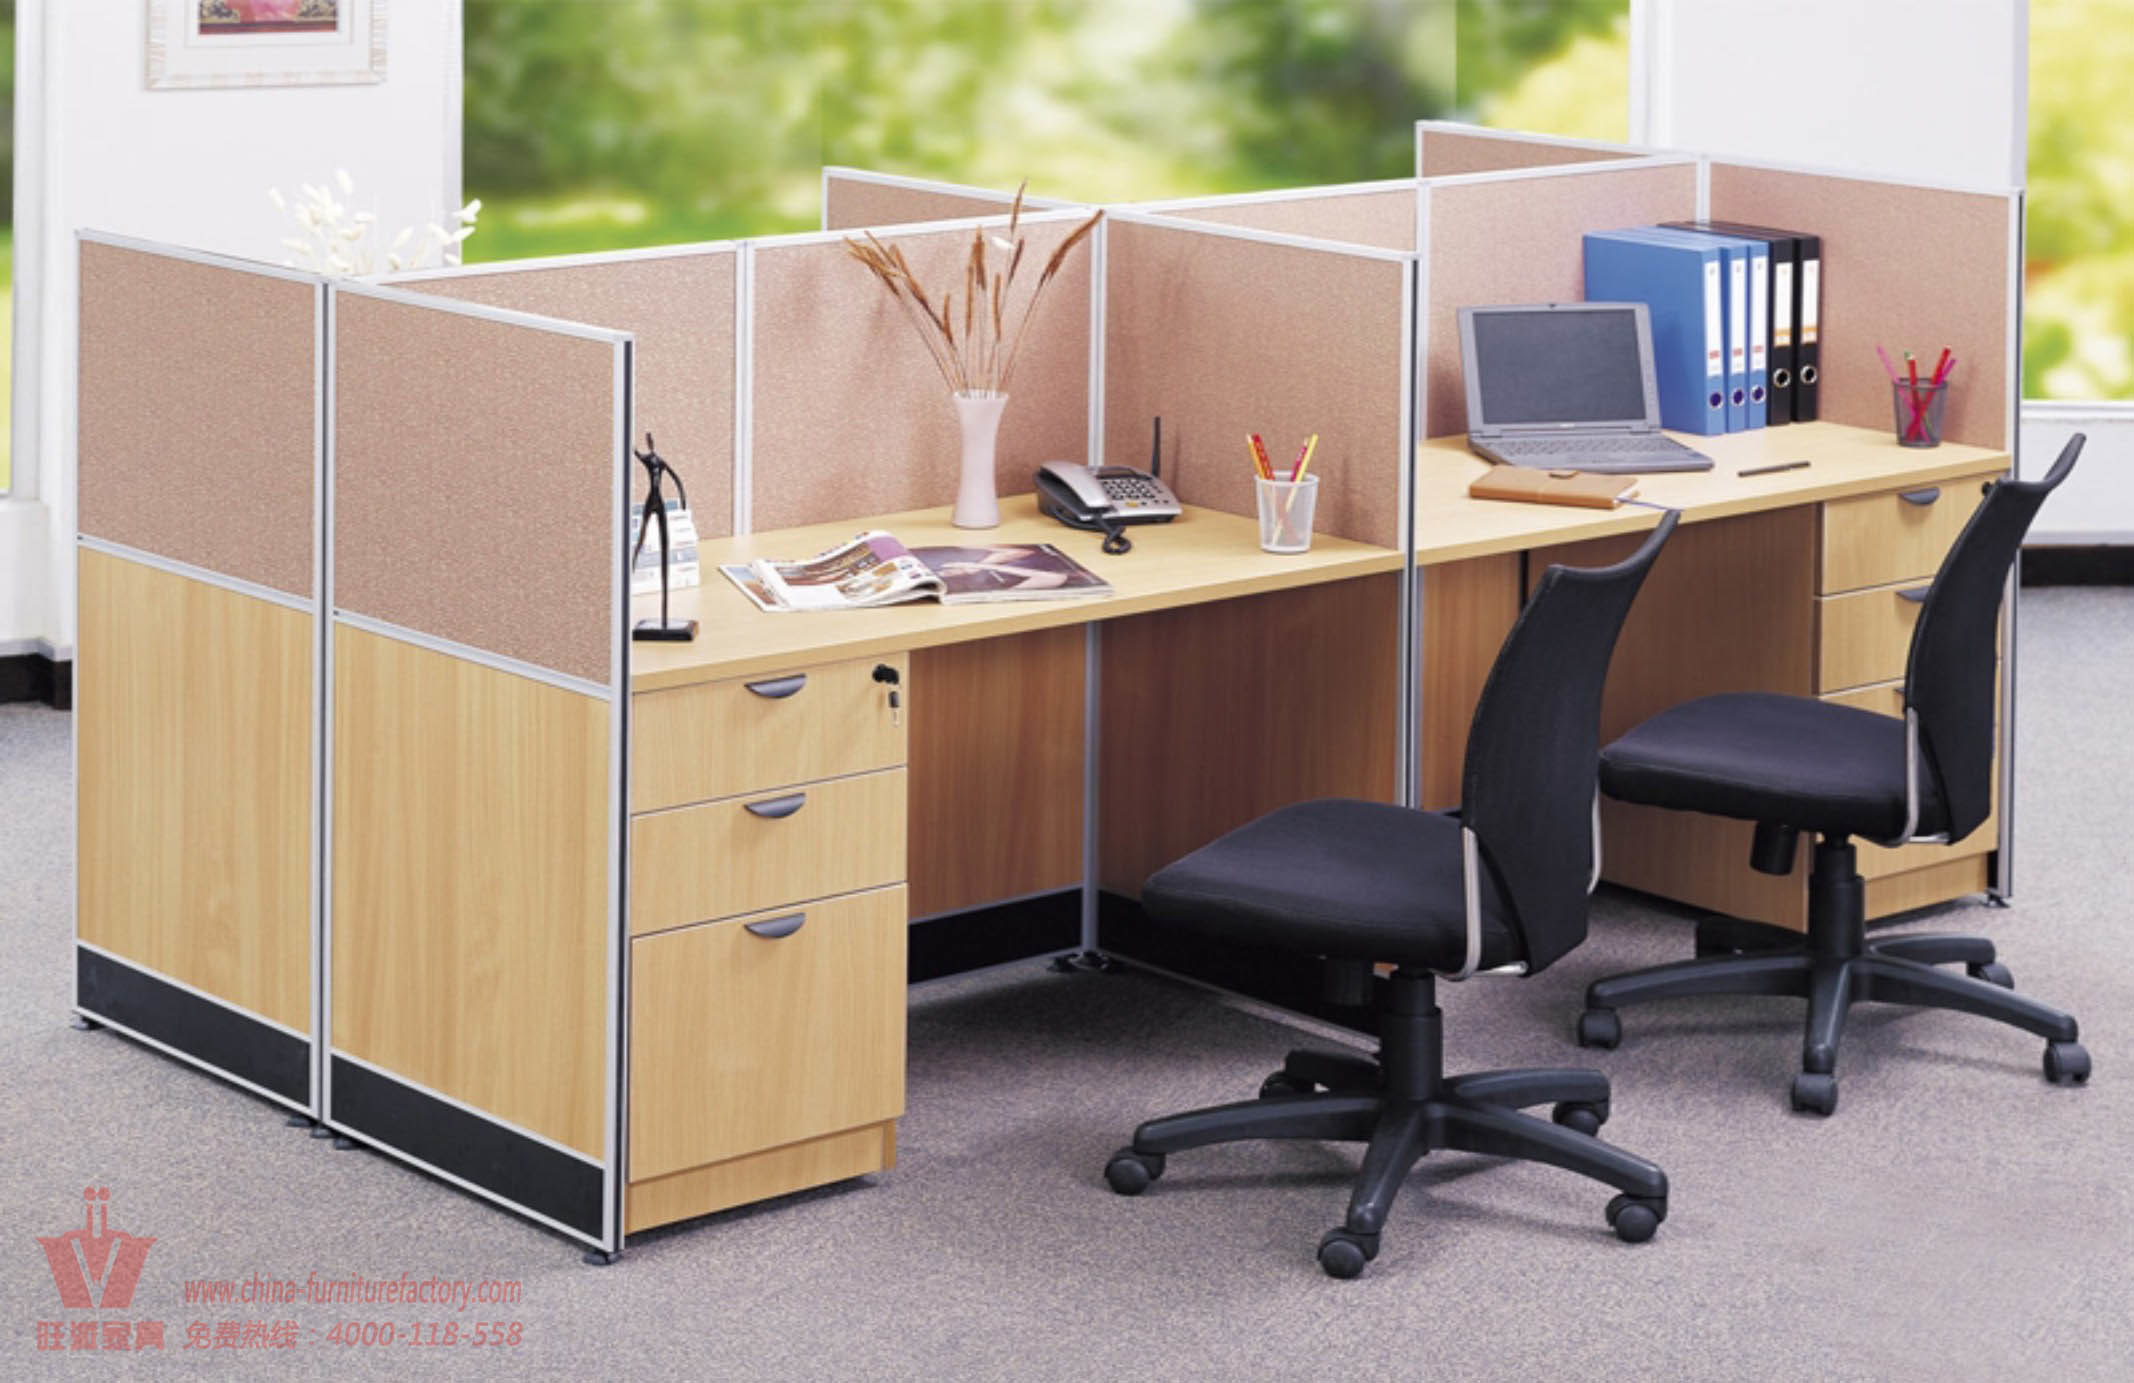 poste de travail moderne de bureau avec le service de bon. Black Bedroom Furniture Sets. Home Design Ideas